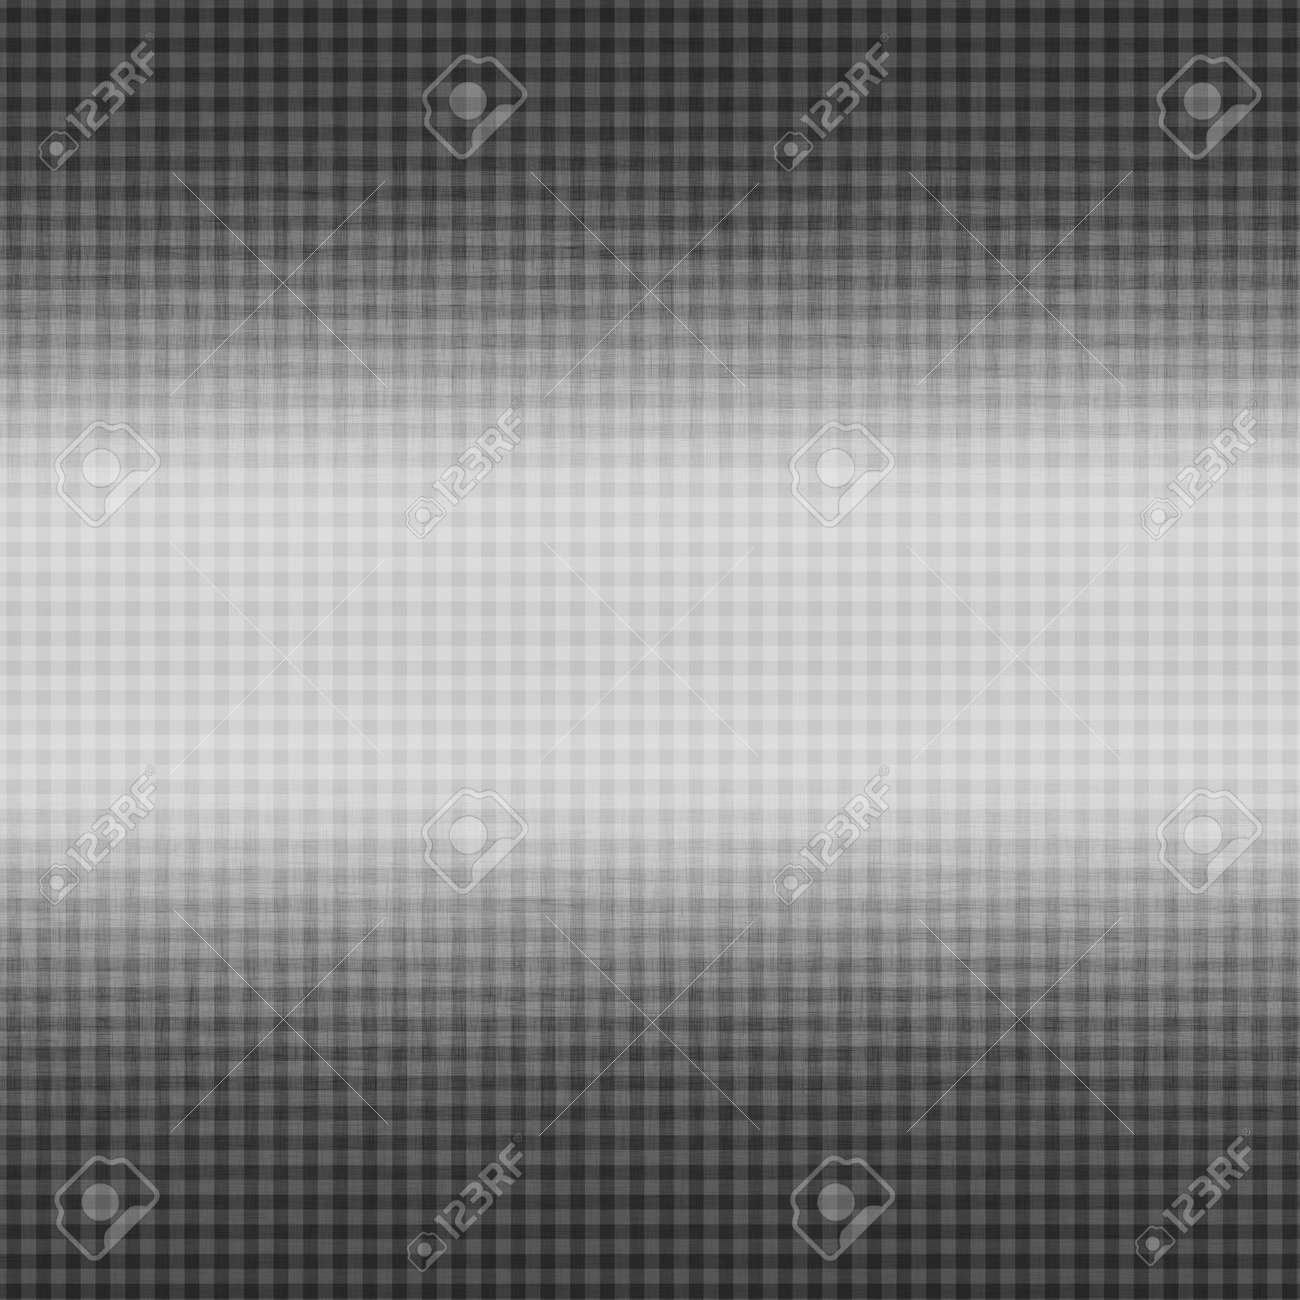 chrome metal background with delicate canvas pattern texture and grid pattern Stock Photo - 14198573